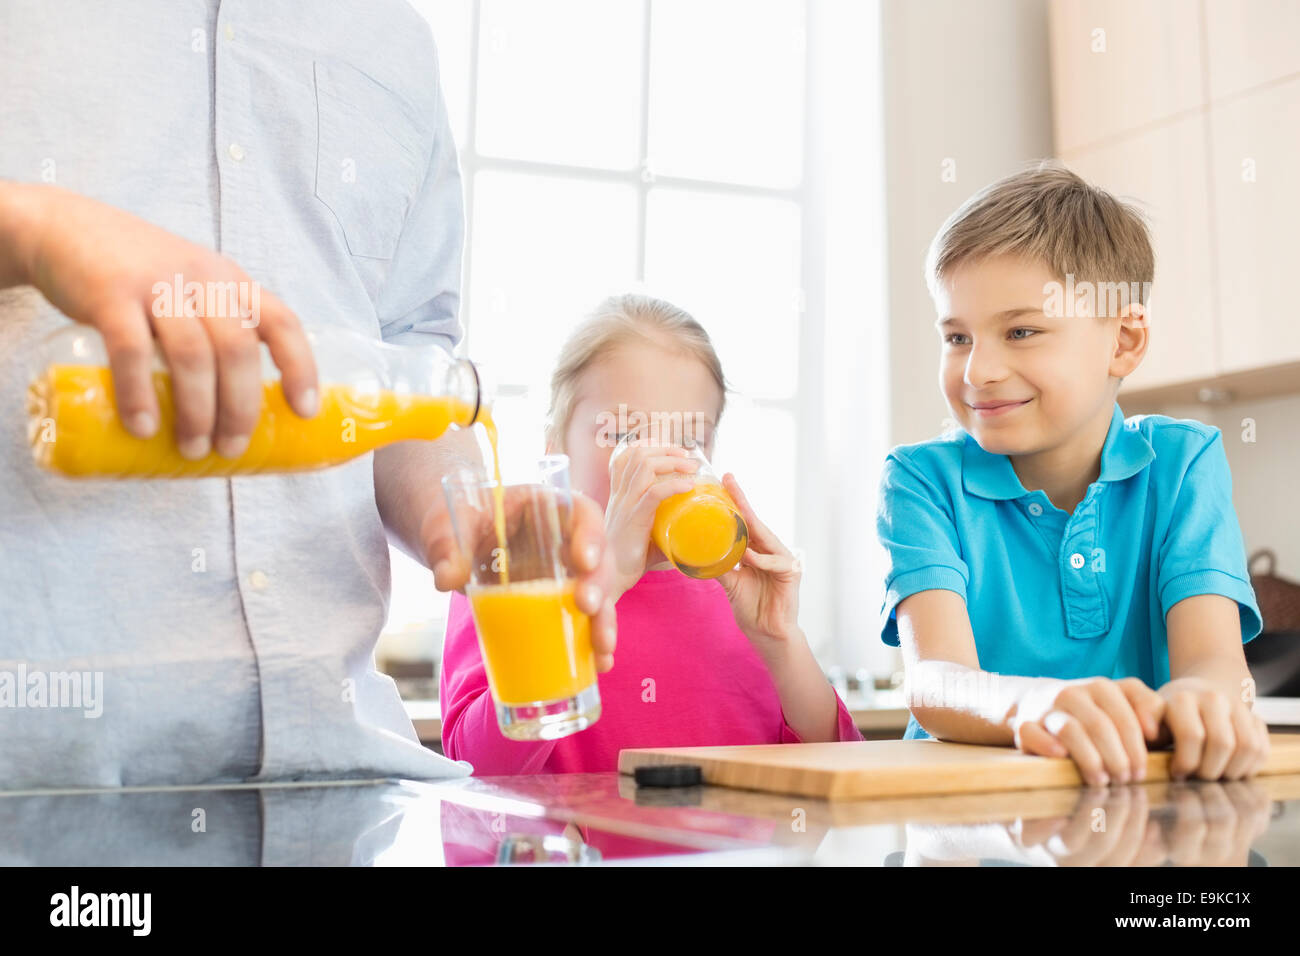 Midsection of father serving orange juice for children in kitchen - Stock Image